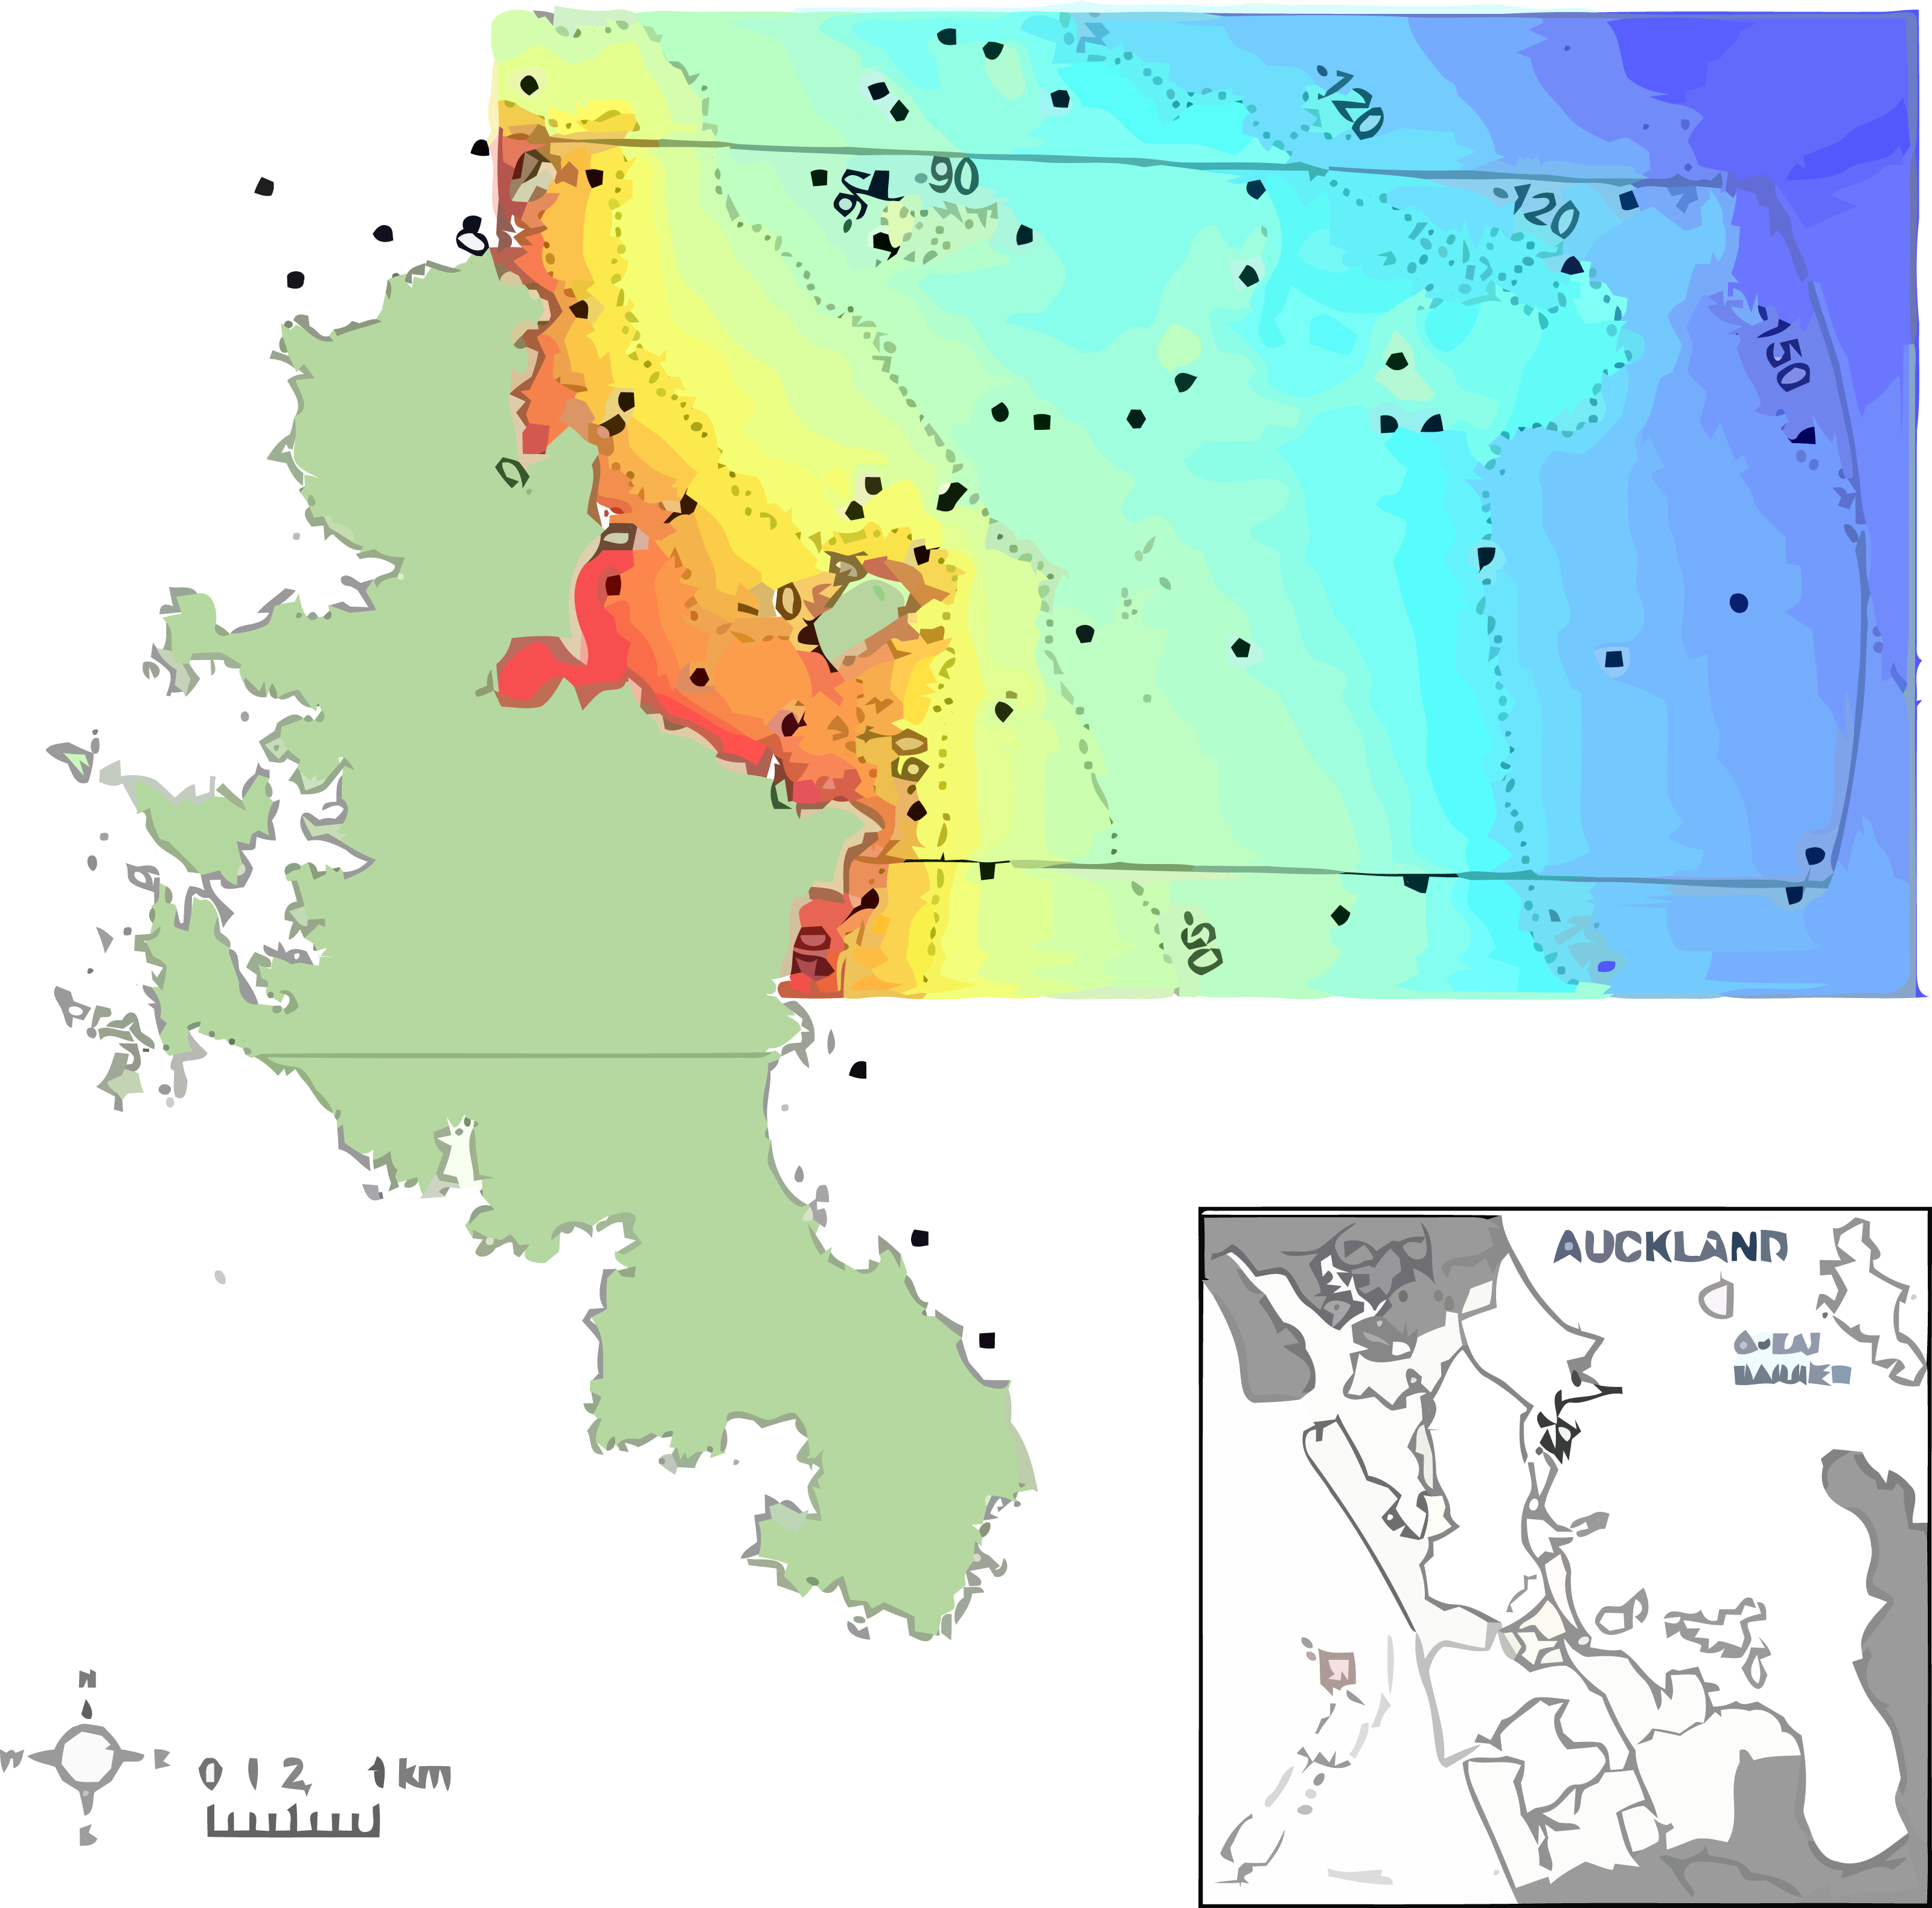 Baseline seabed habitat and biotope mapping for a proposed marine ...